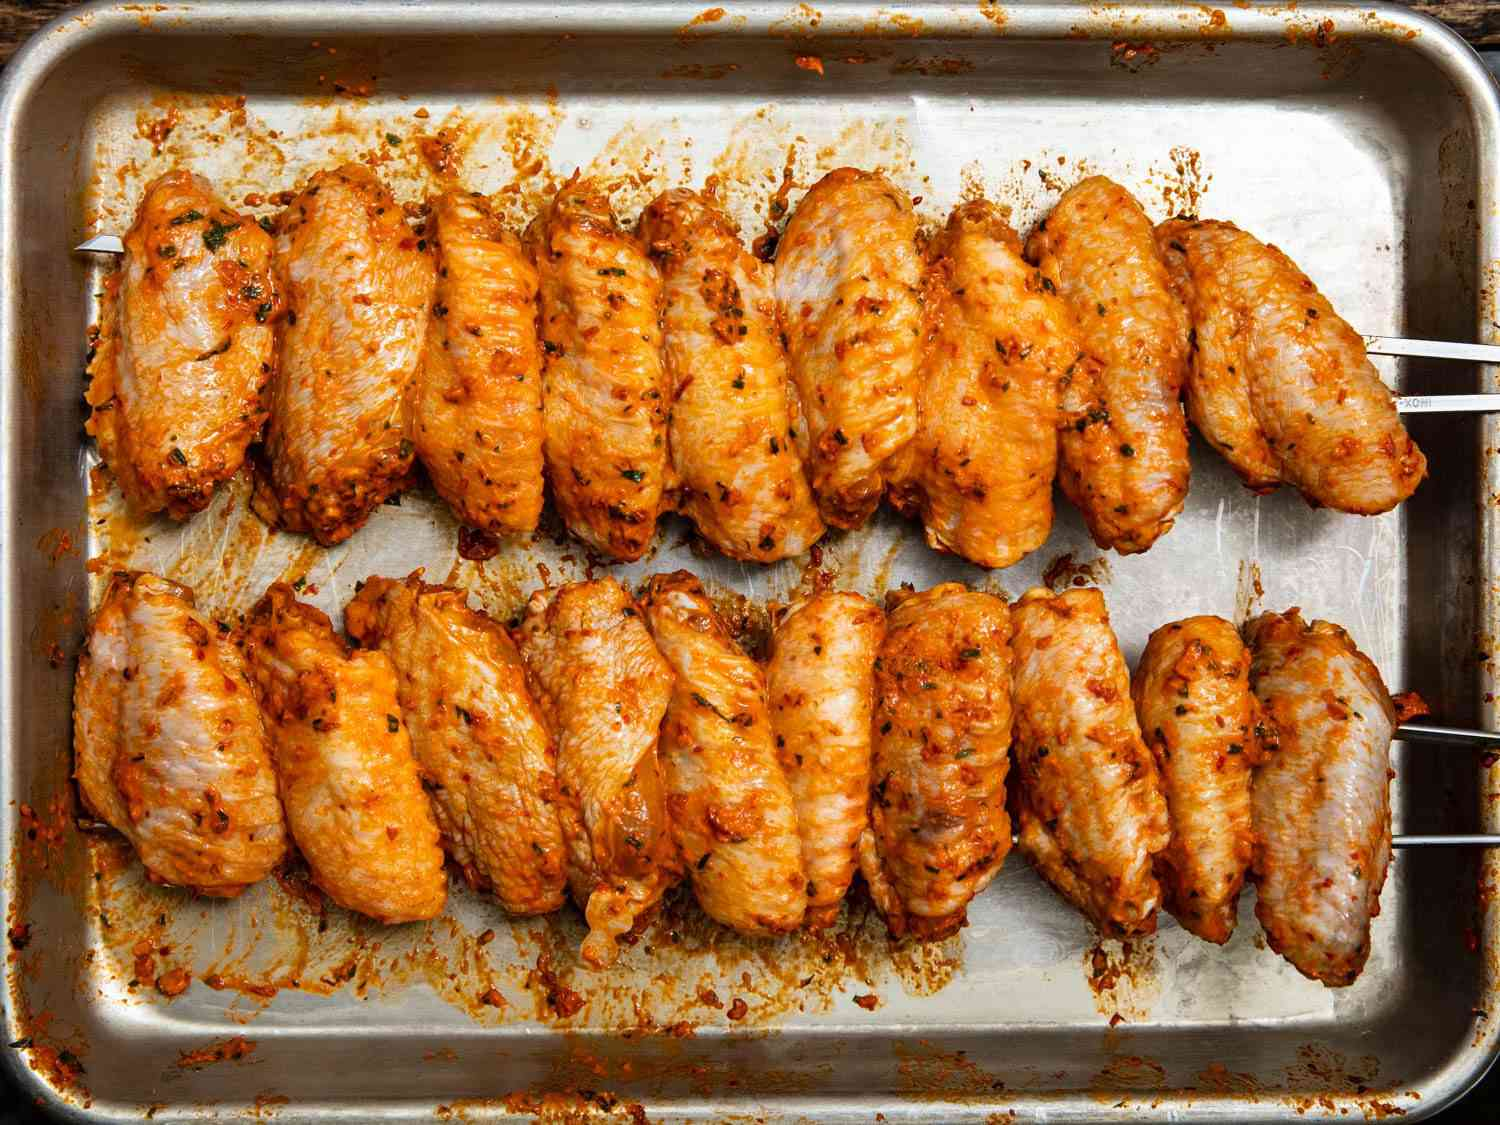 Overhead shot of a tray of skewered Turkish chicken wings rubbed with chili paste, before cooking